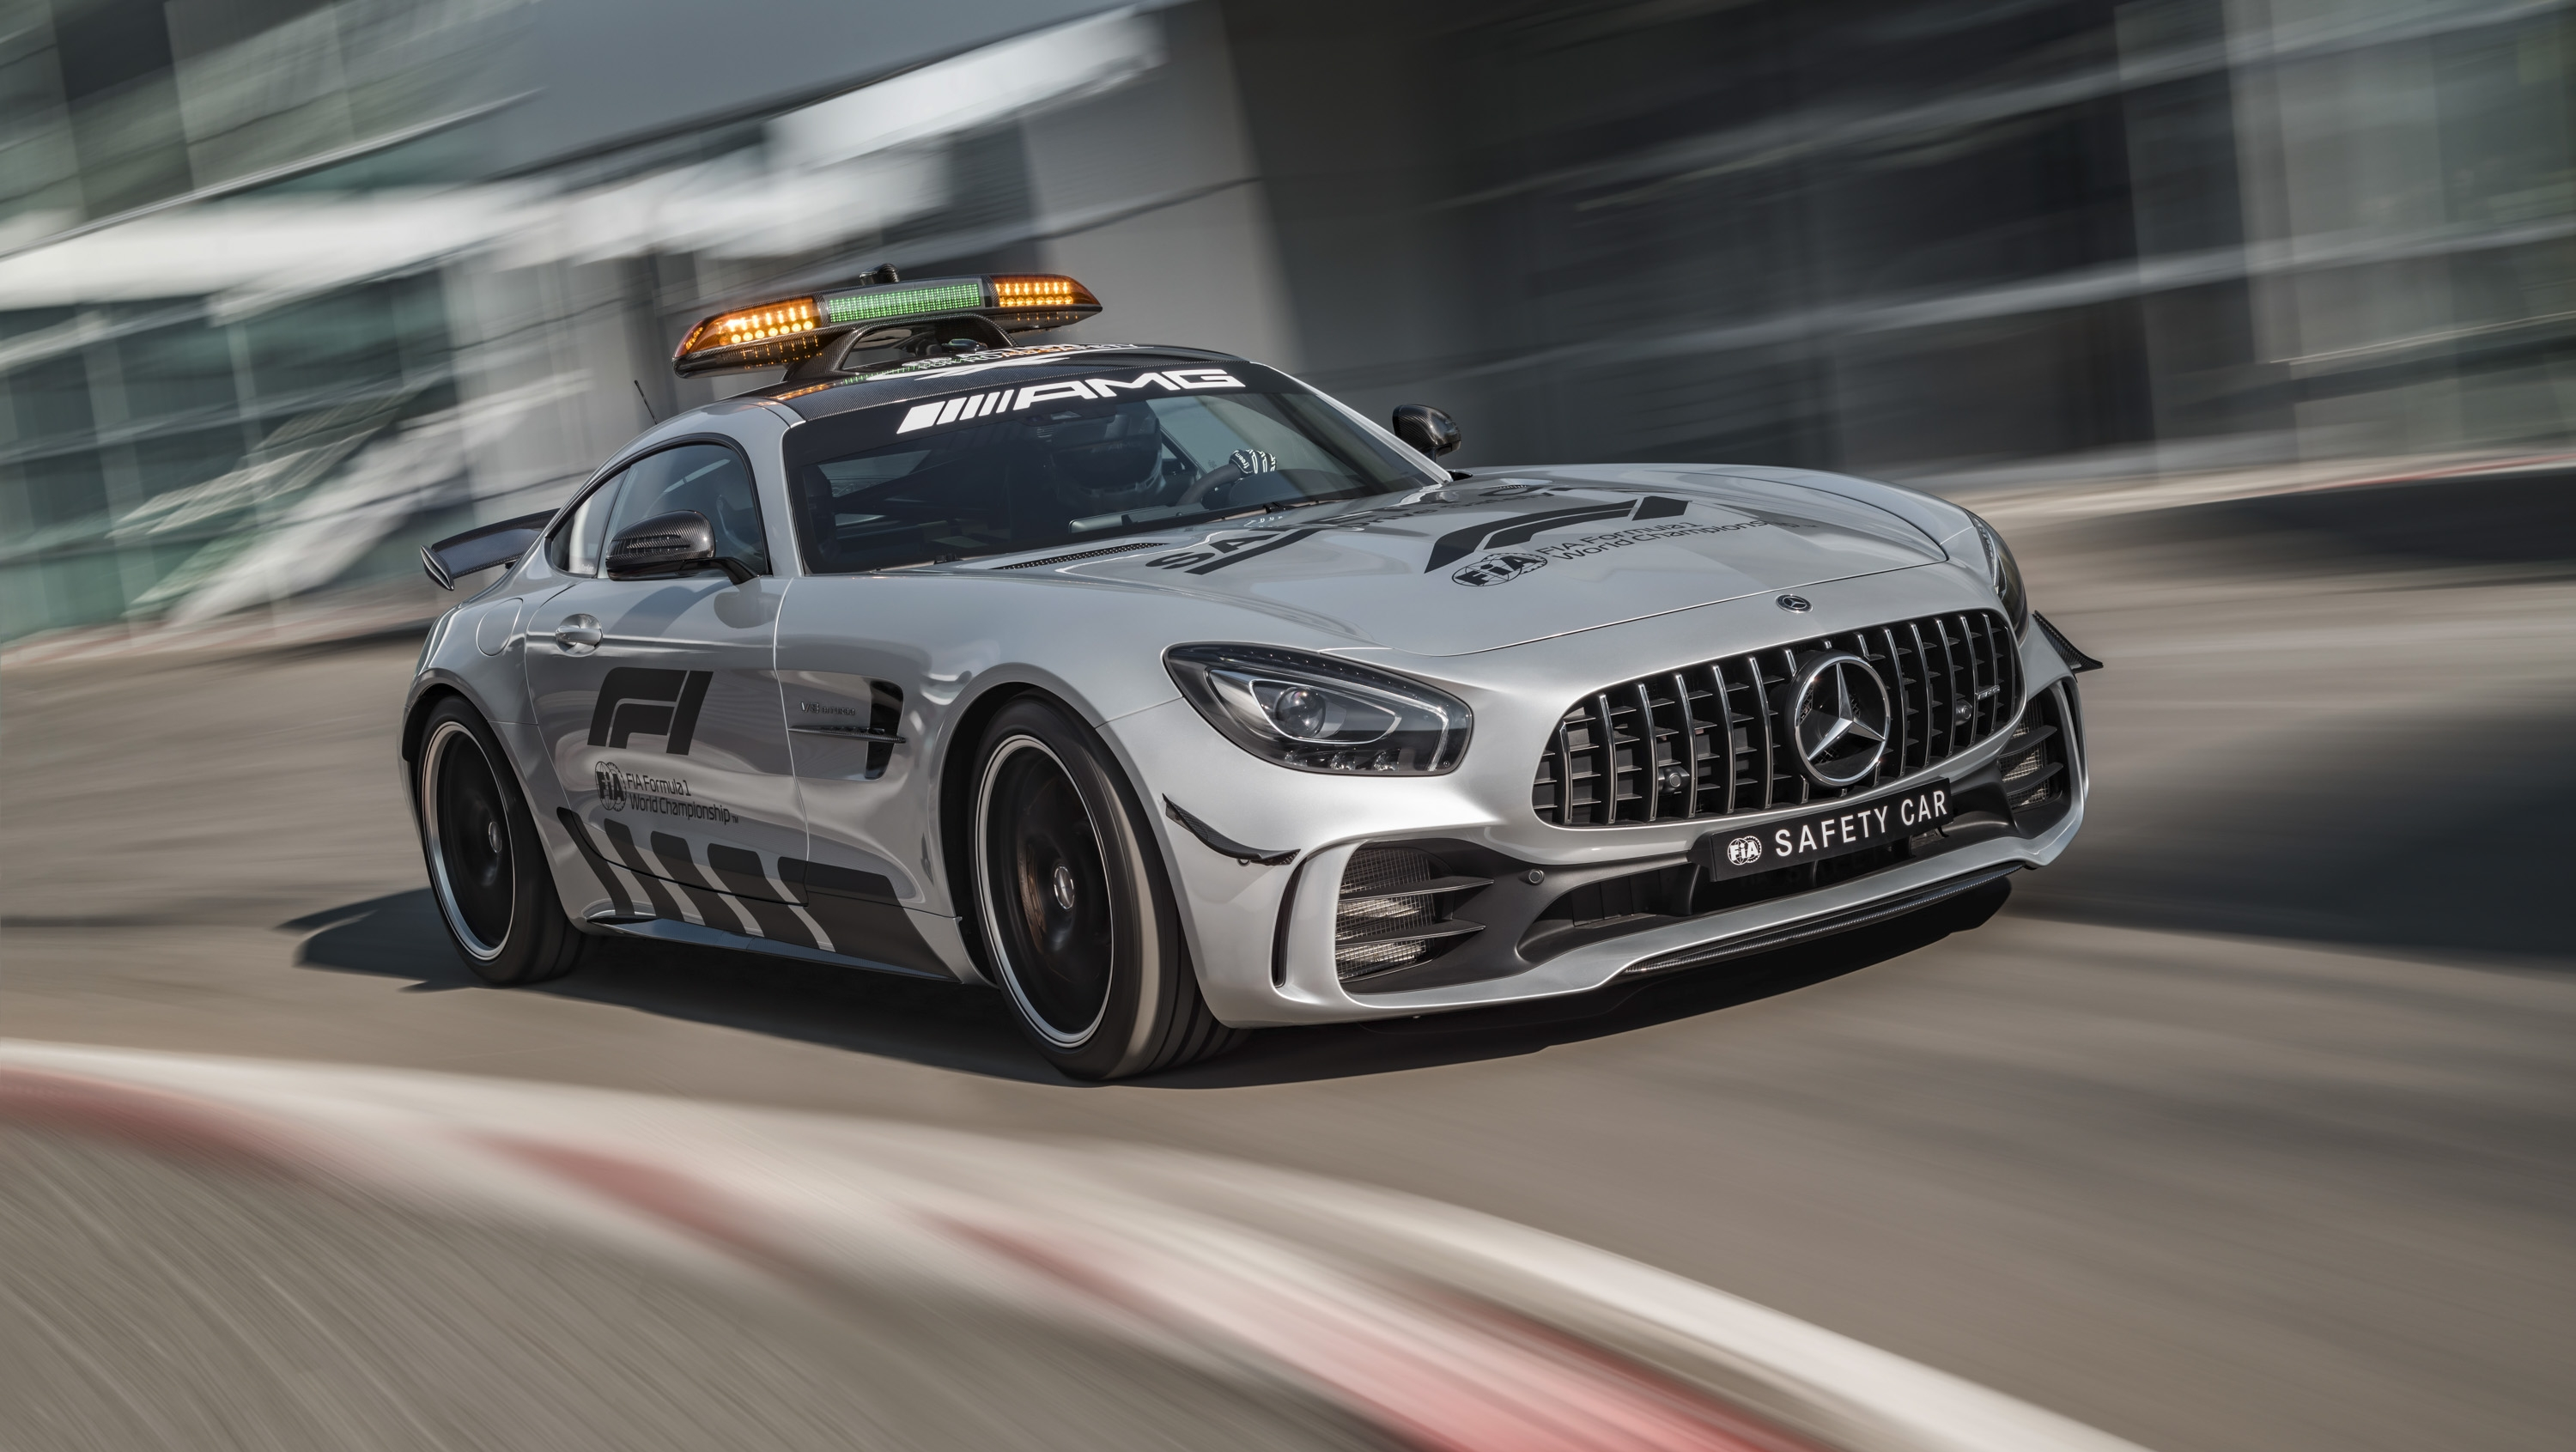 Mercedes Benz Sls Amg Review >> 2018 Mercedes-AMG GT R Formula 1 Safety Car Review - Top Speed